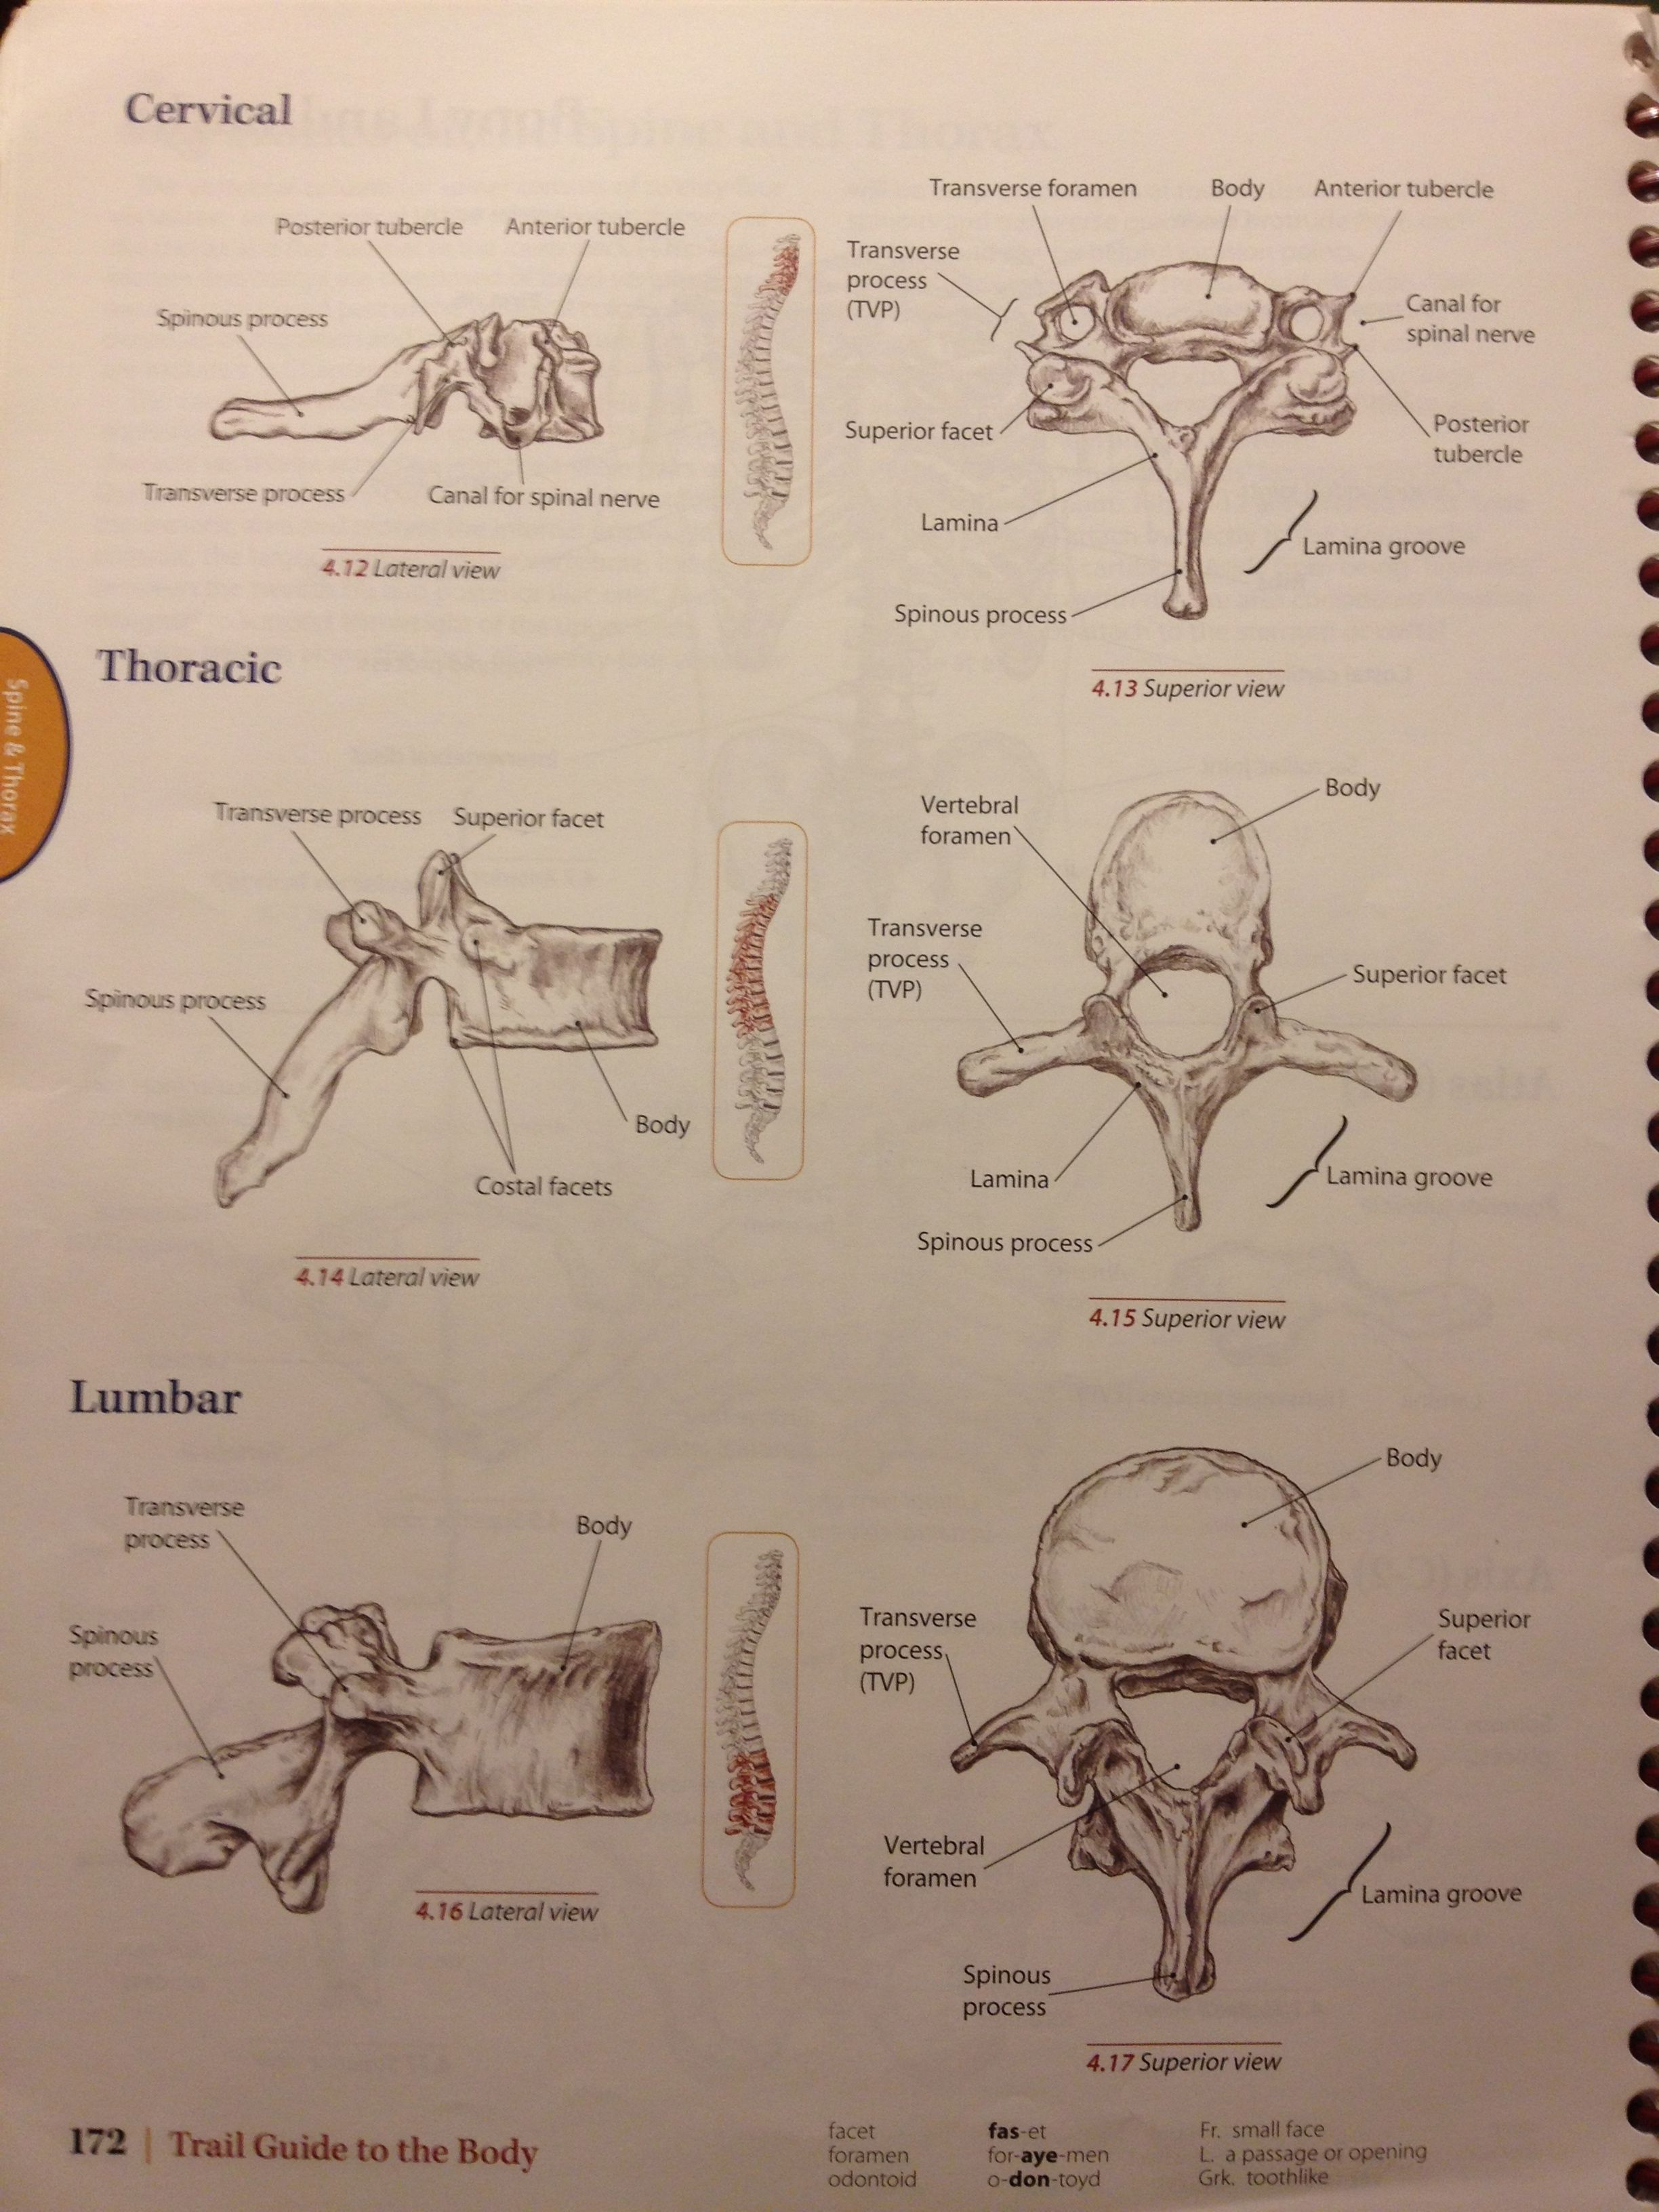 Bony Landmarks Of Cervical Thoracic And Lumbar Vertebrae